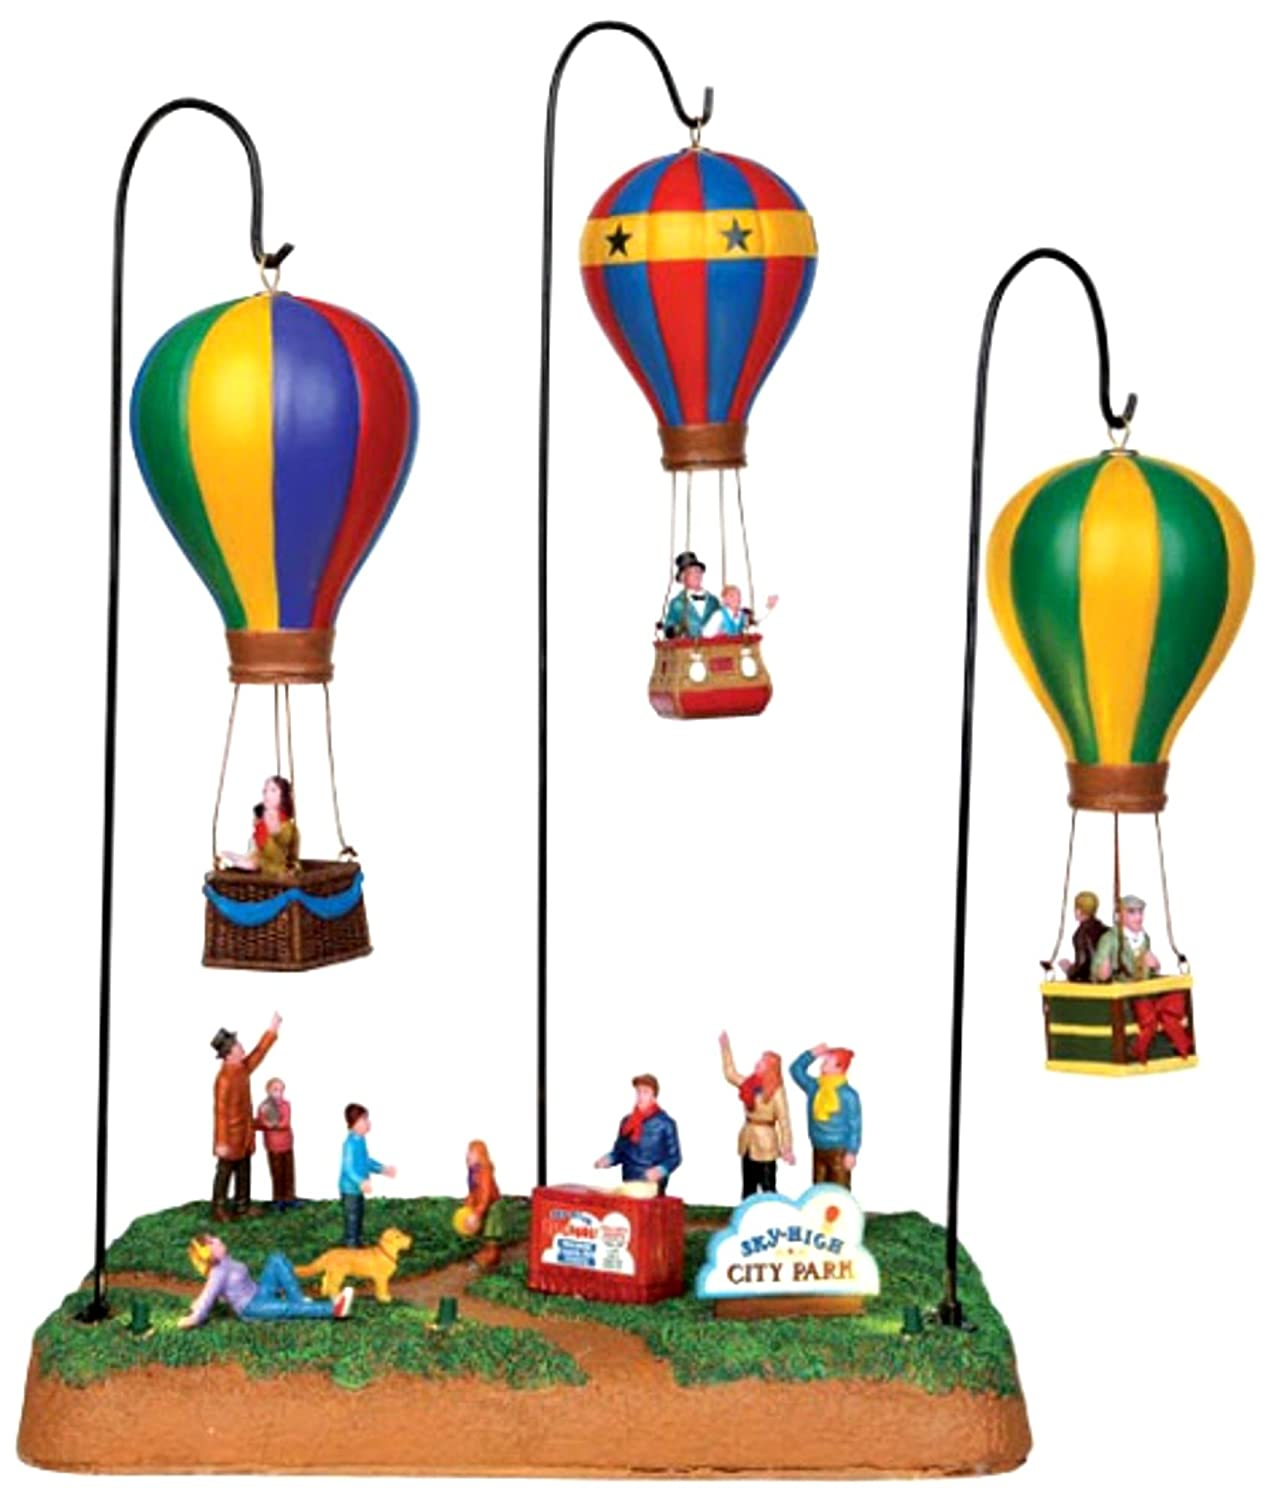 Lemax Village Collection Sky-High Park with Adaptor   44763 by Lemax